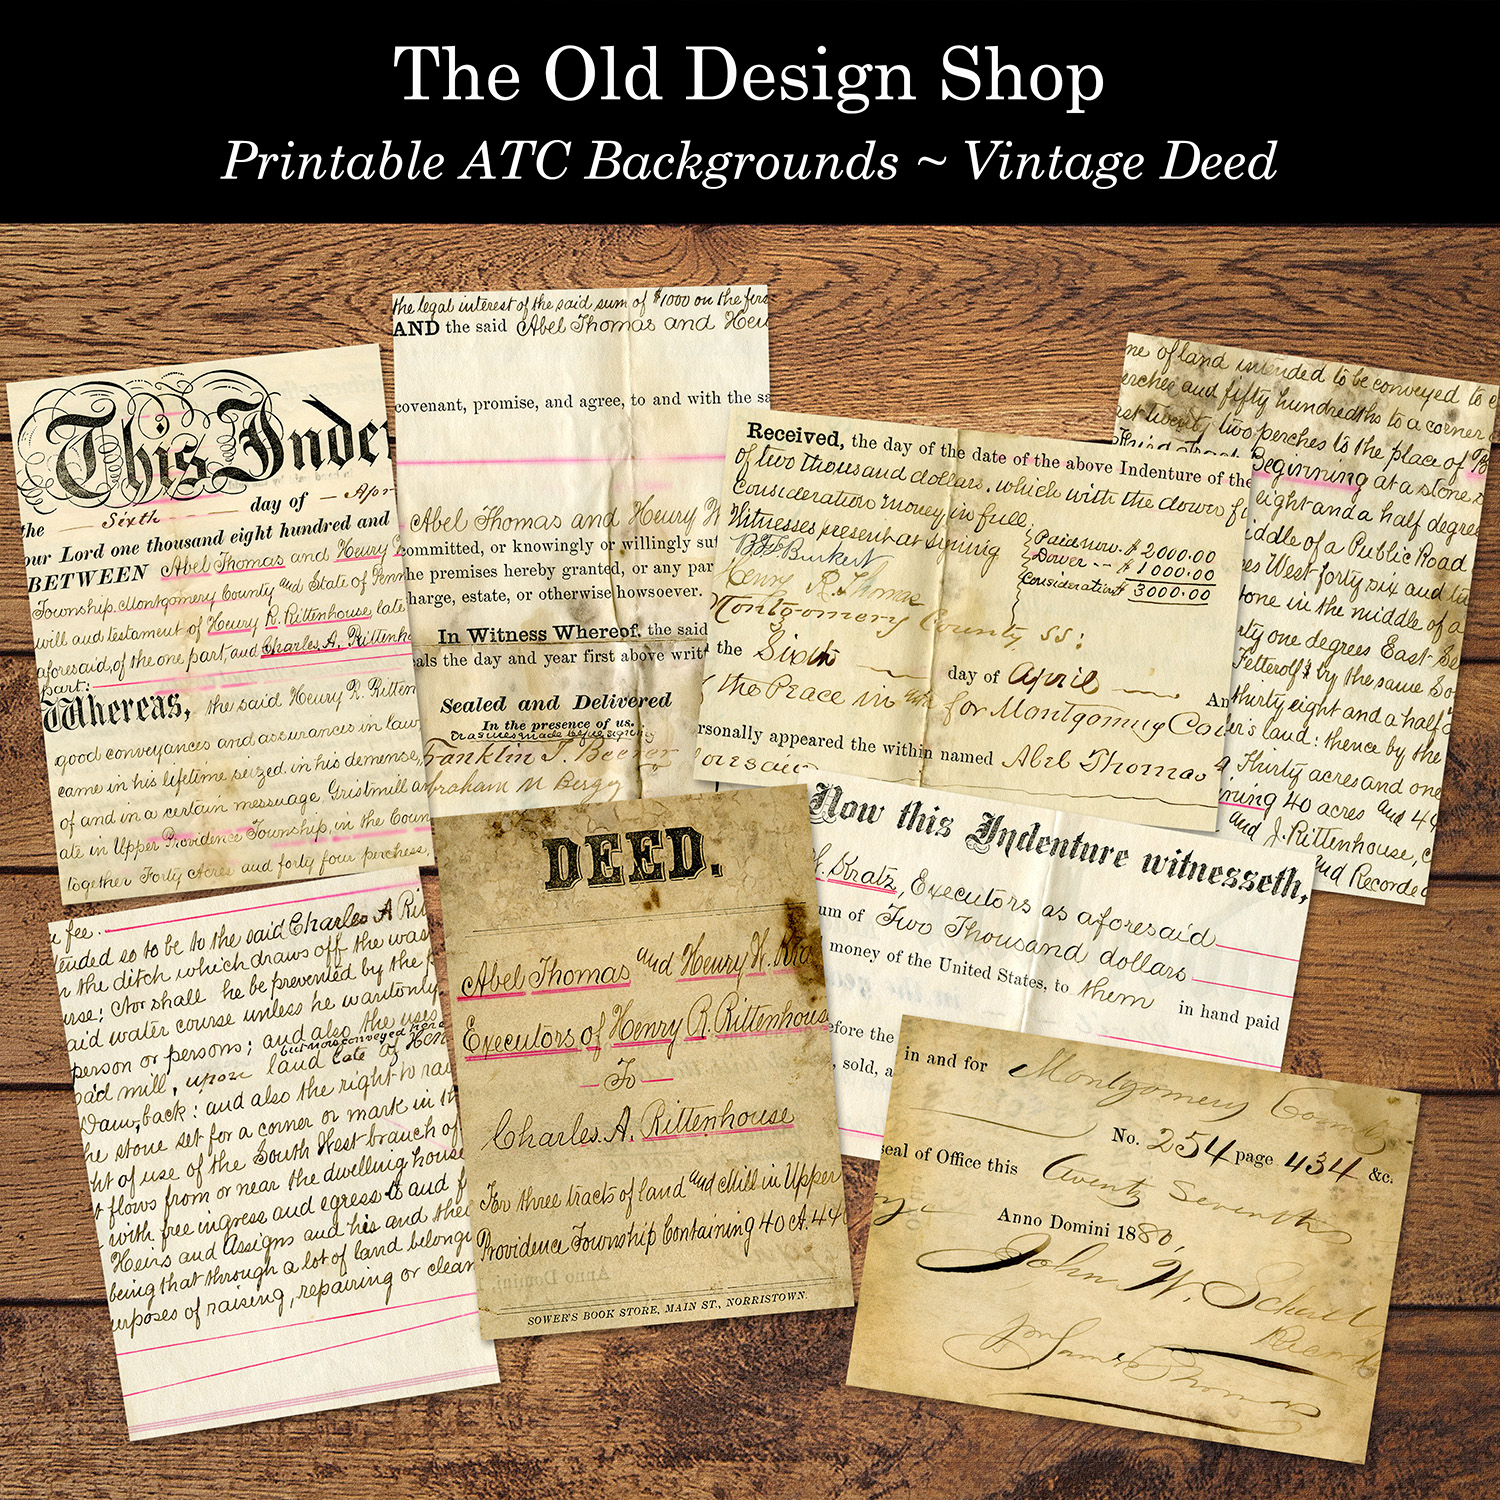 vintage Deed document printable ATC backgrounds